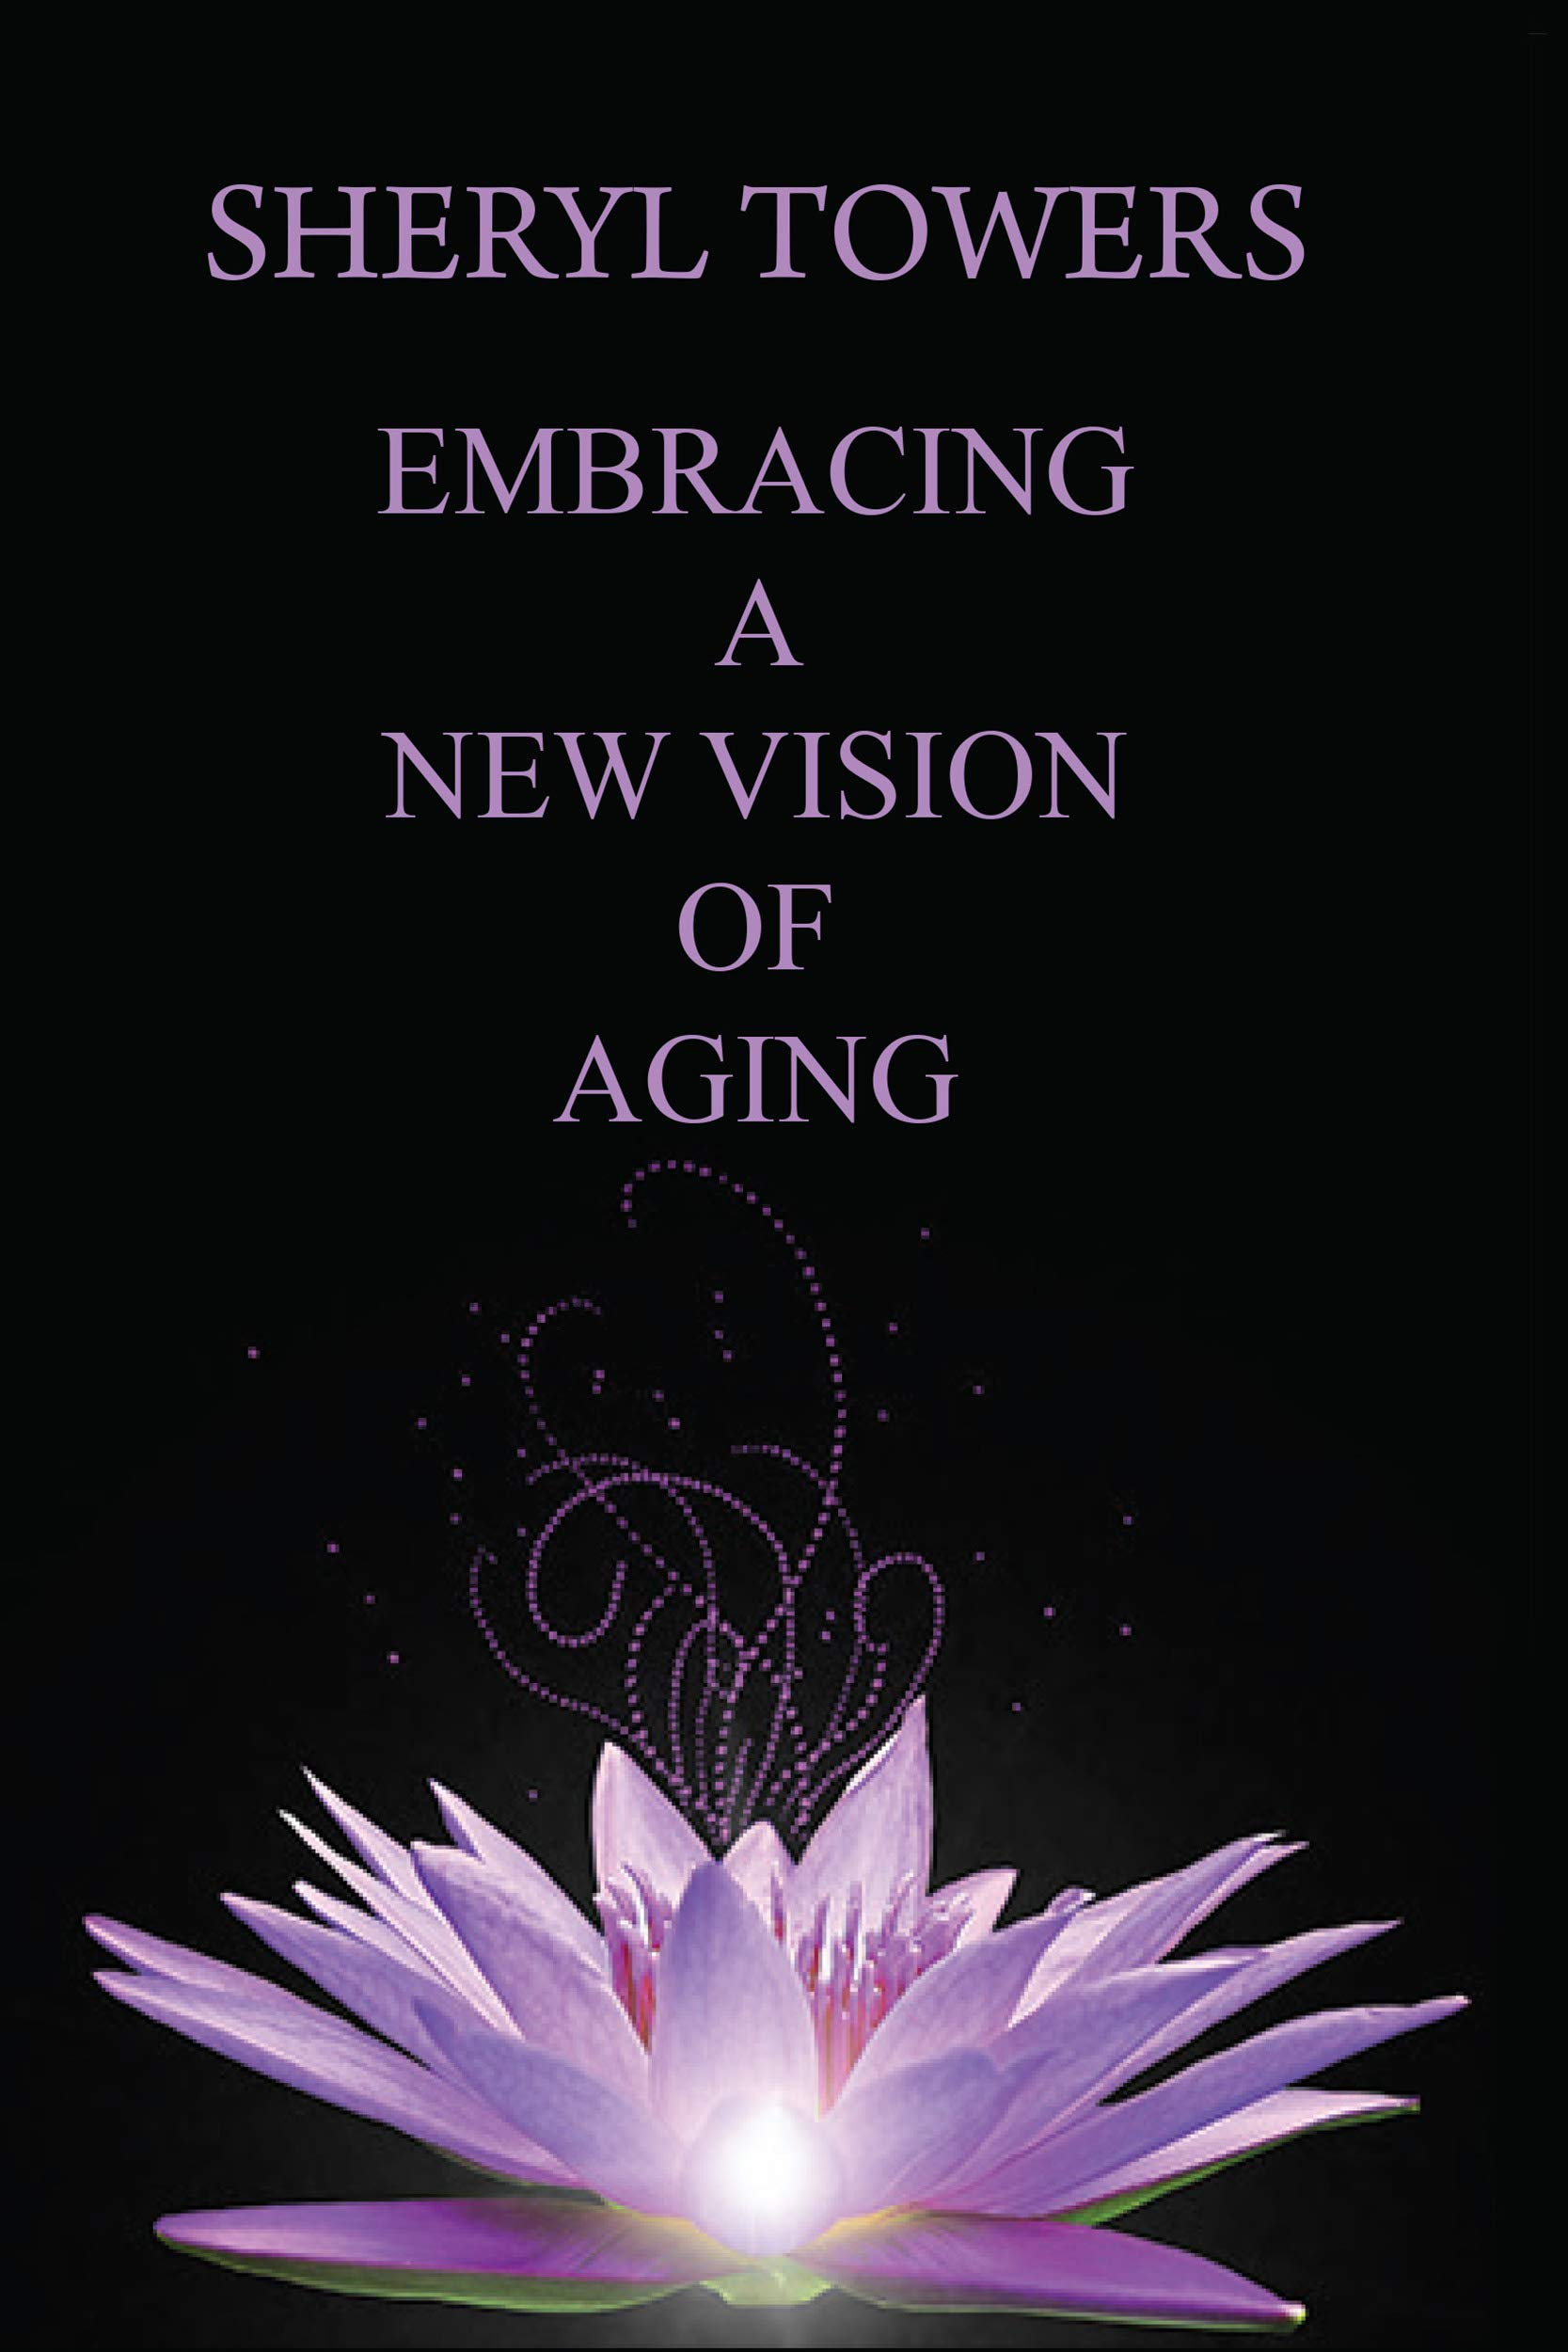 Image OfEmbracing A New Vision Of Aging